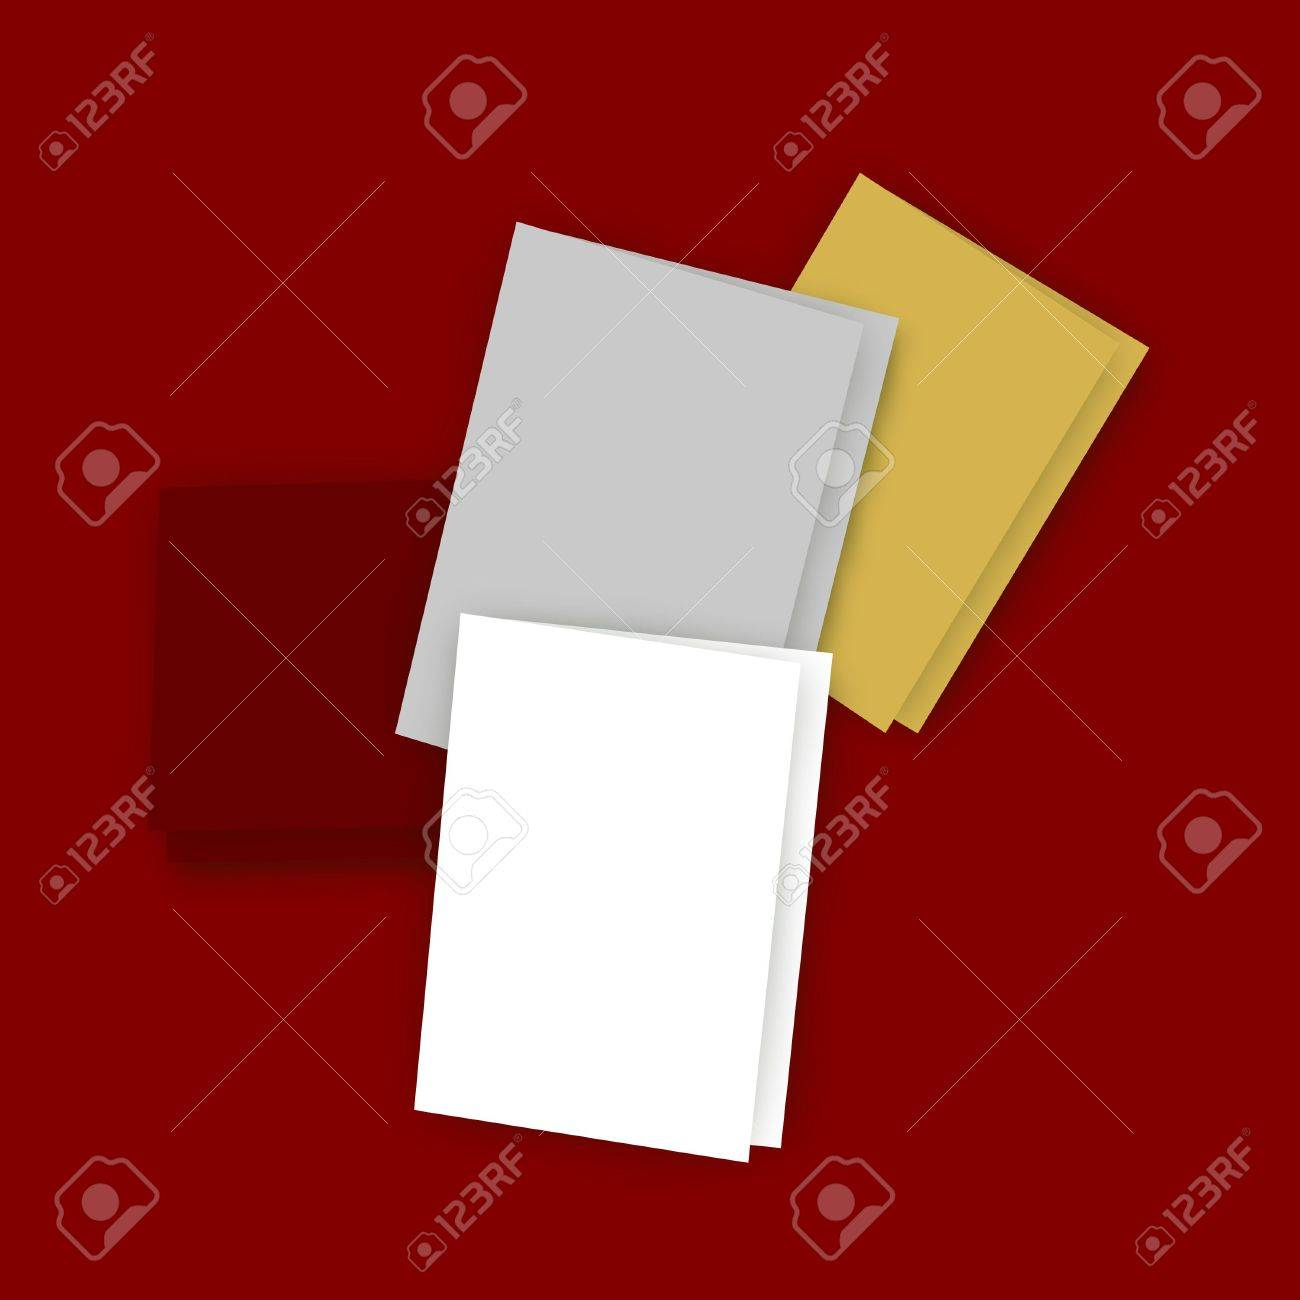 Illustration Of Five Greeting Cards With Blank Covers And White